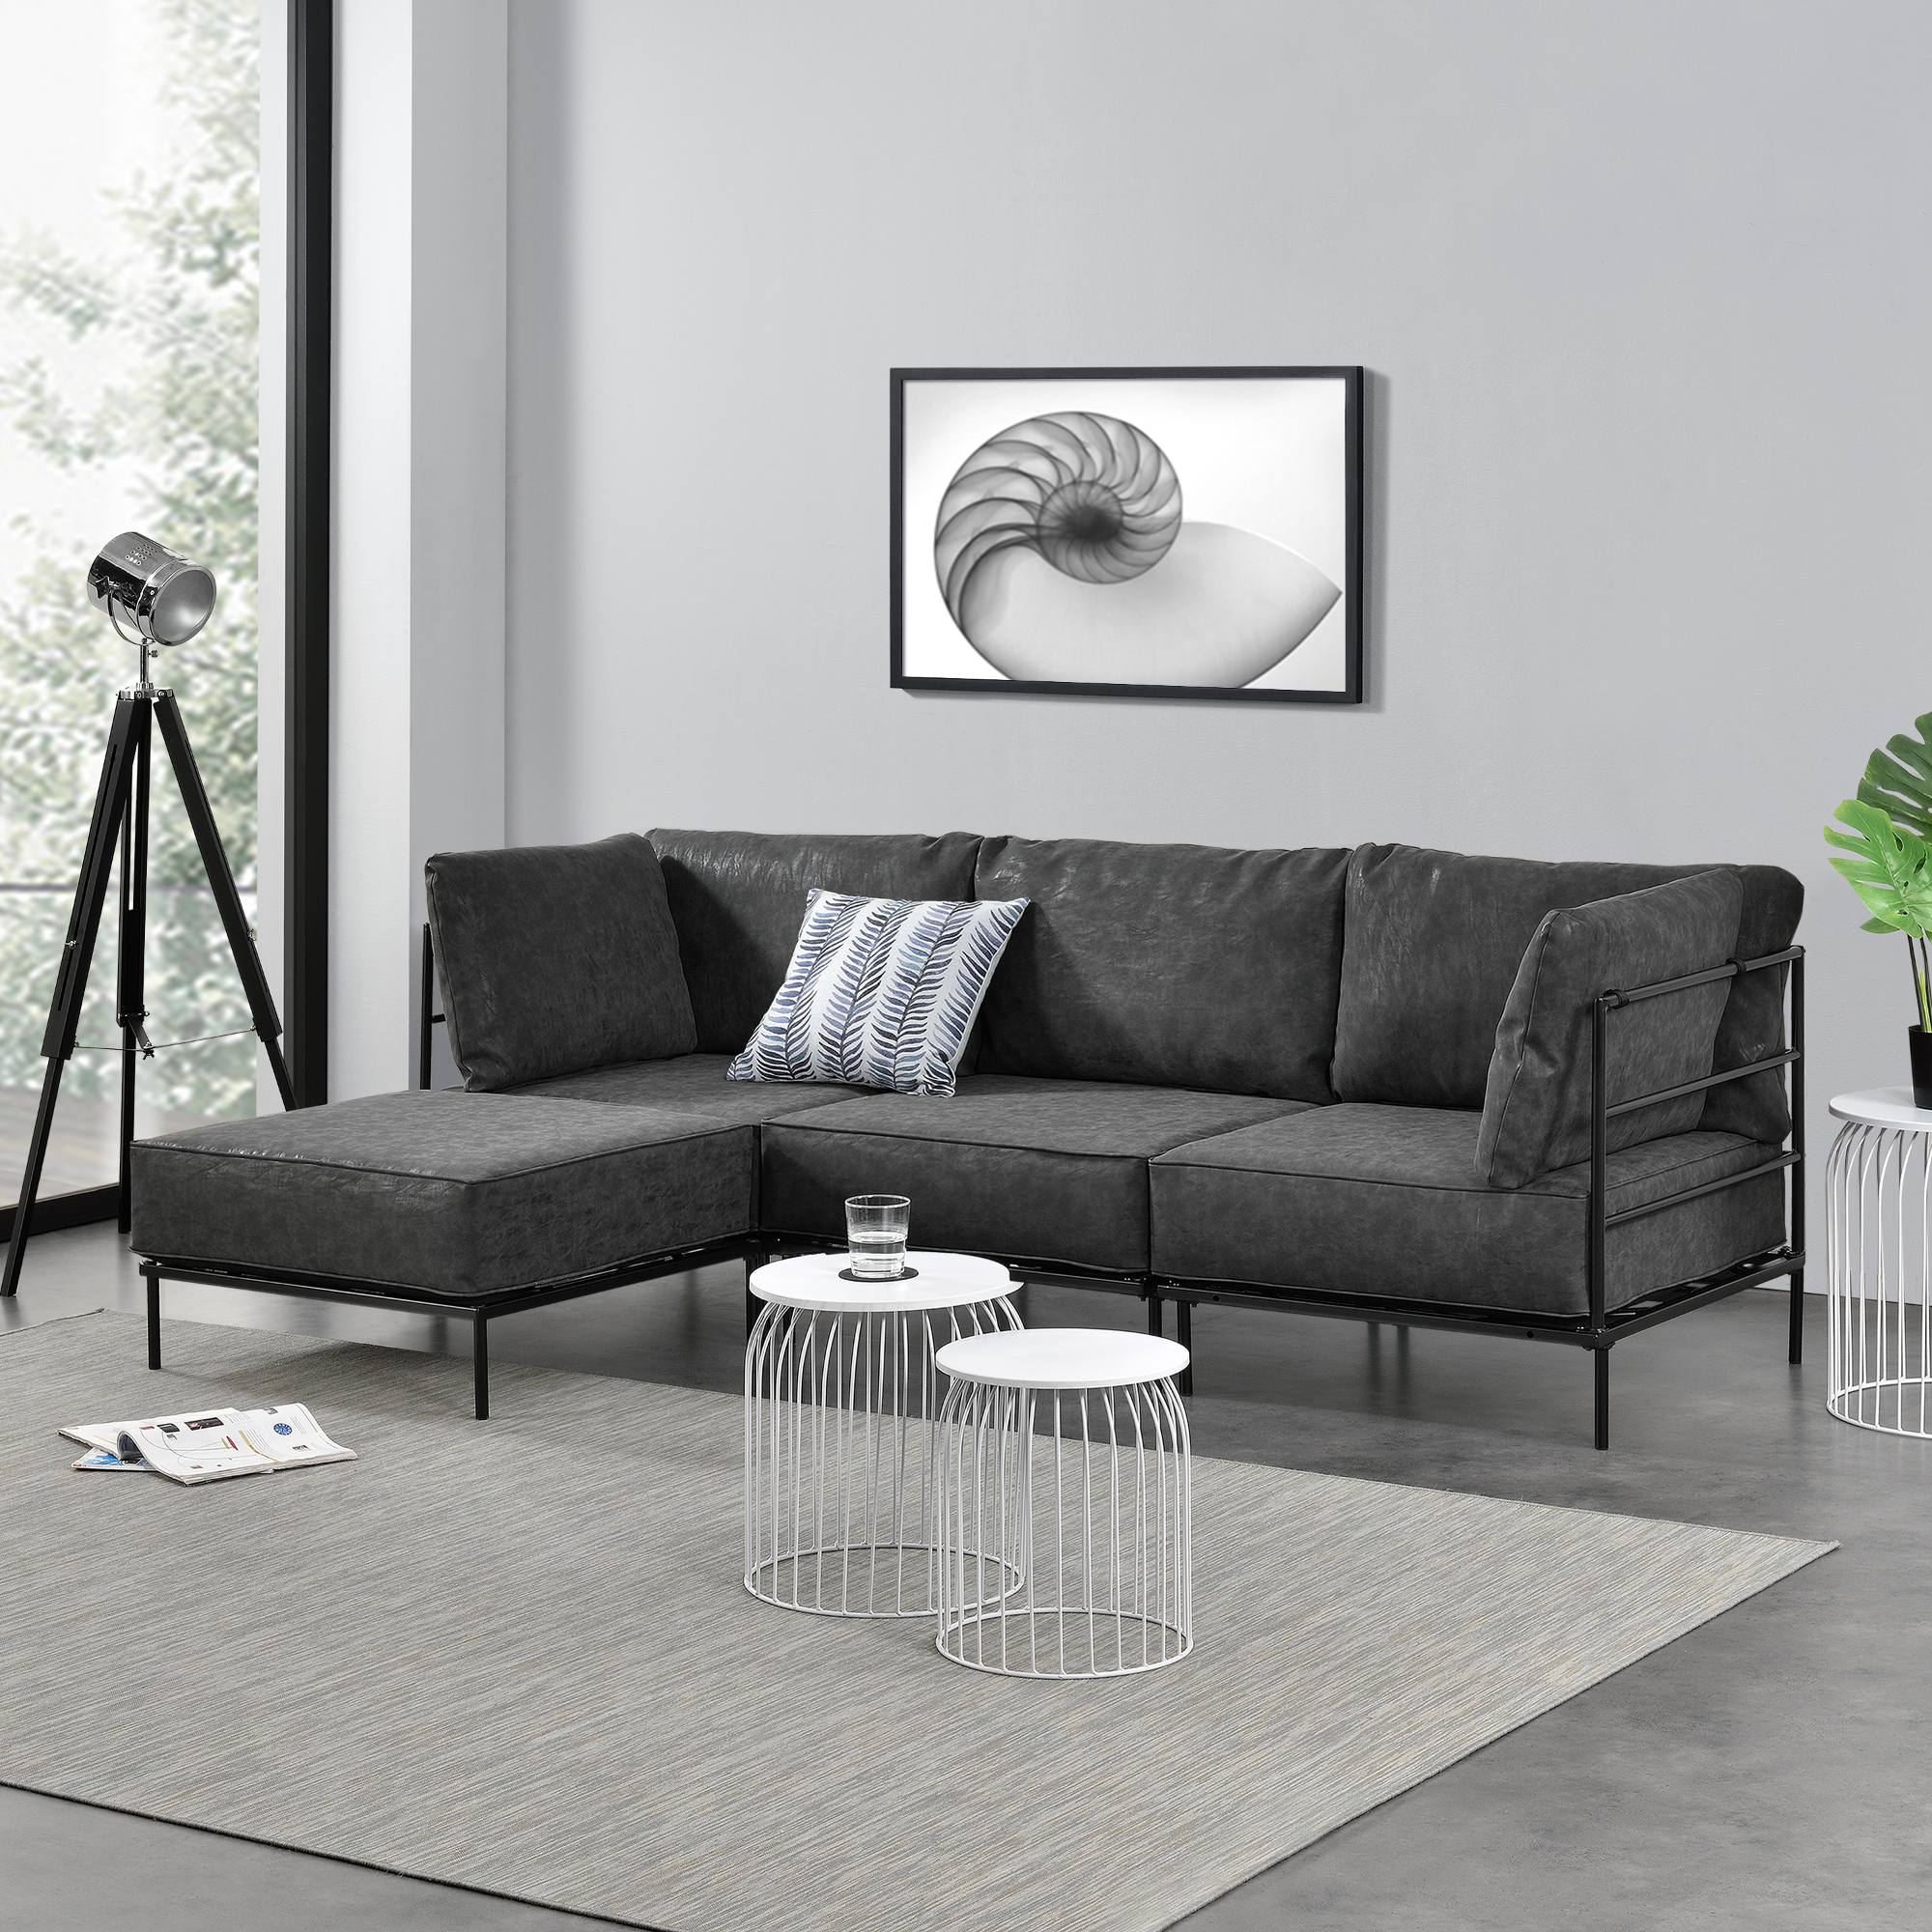 ecksofa sofa couch eckcouch polstergarnitur wohnlandschaft 3 sitzer ebay. Black Bedroom Furniture Sets. Home Design Ideas